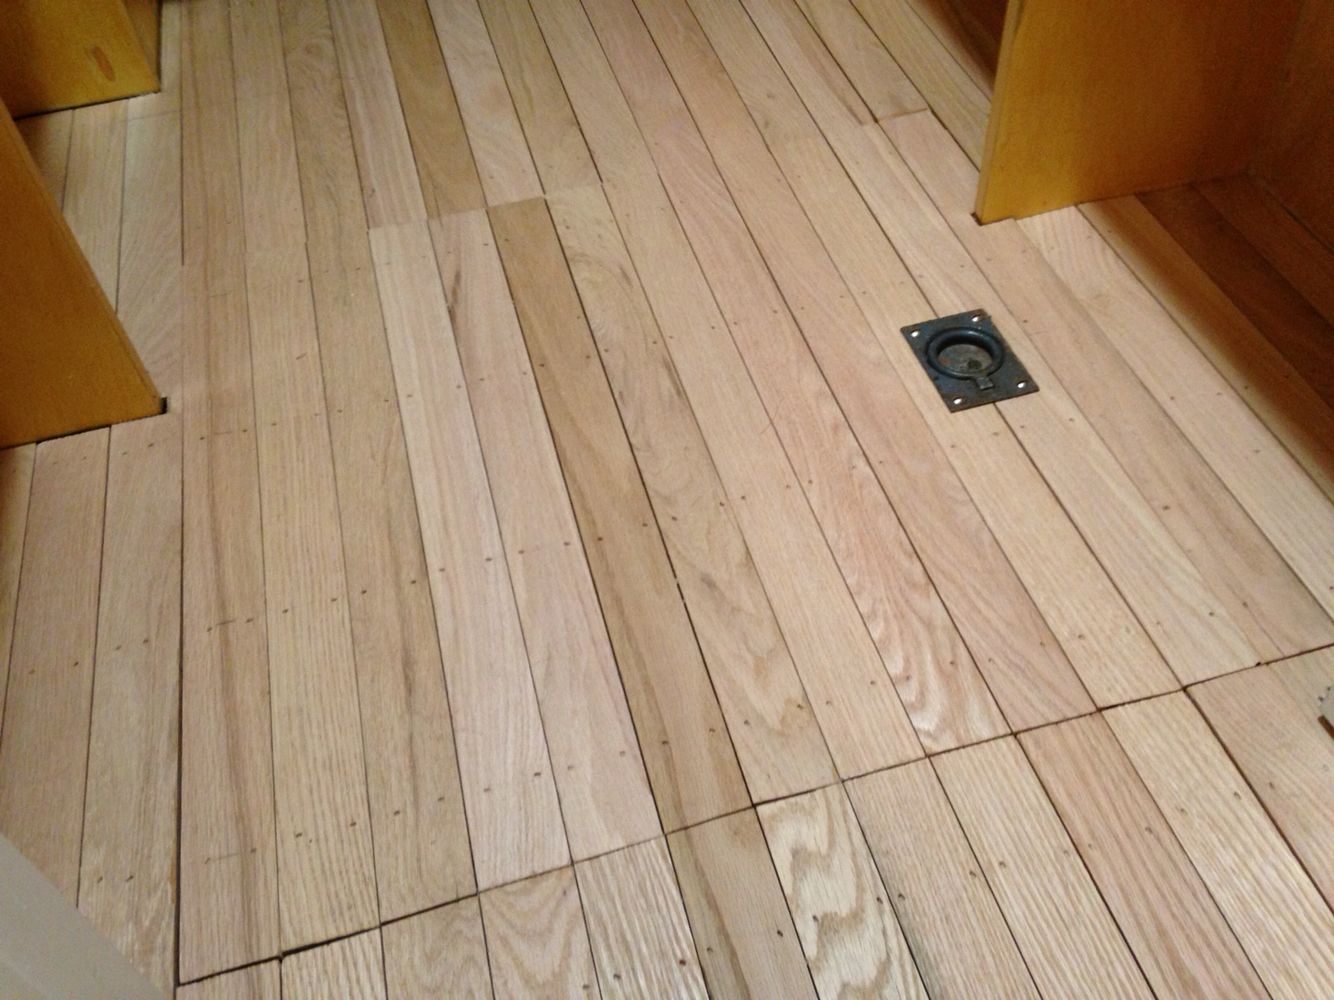 Crawl Space Access That Disappears Into The Hardwood In